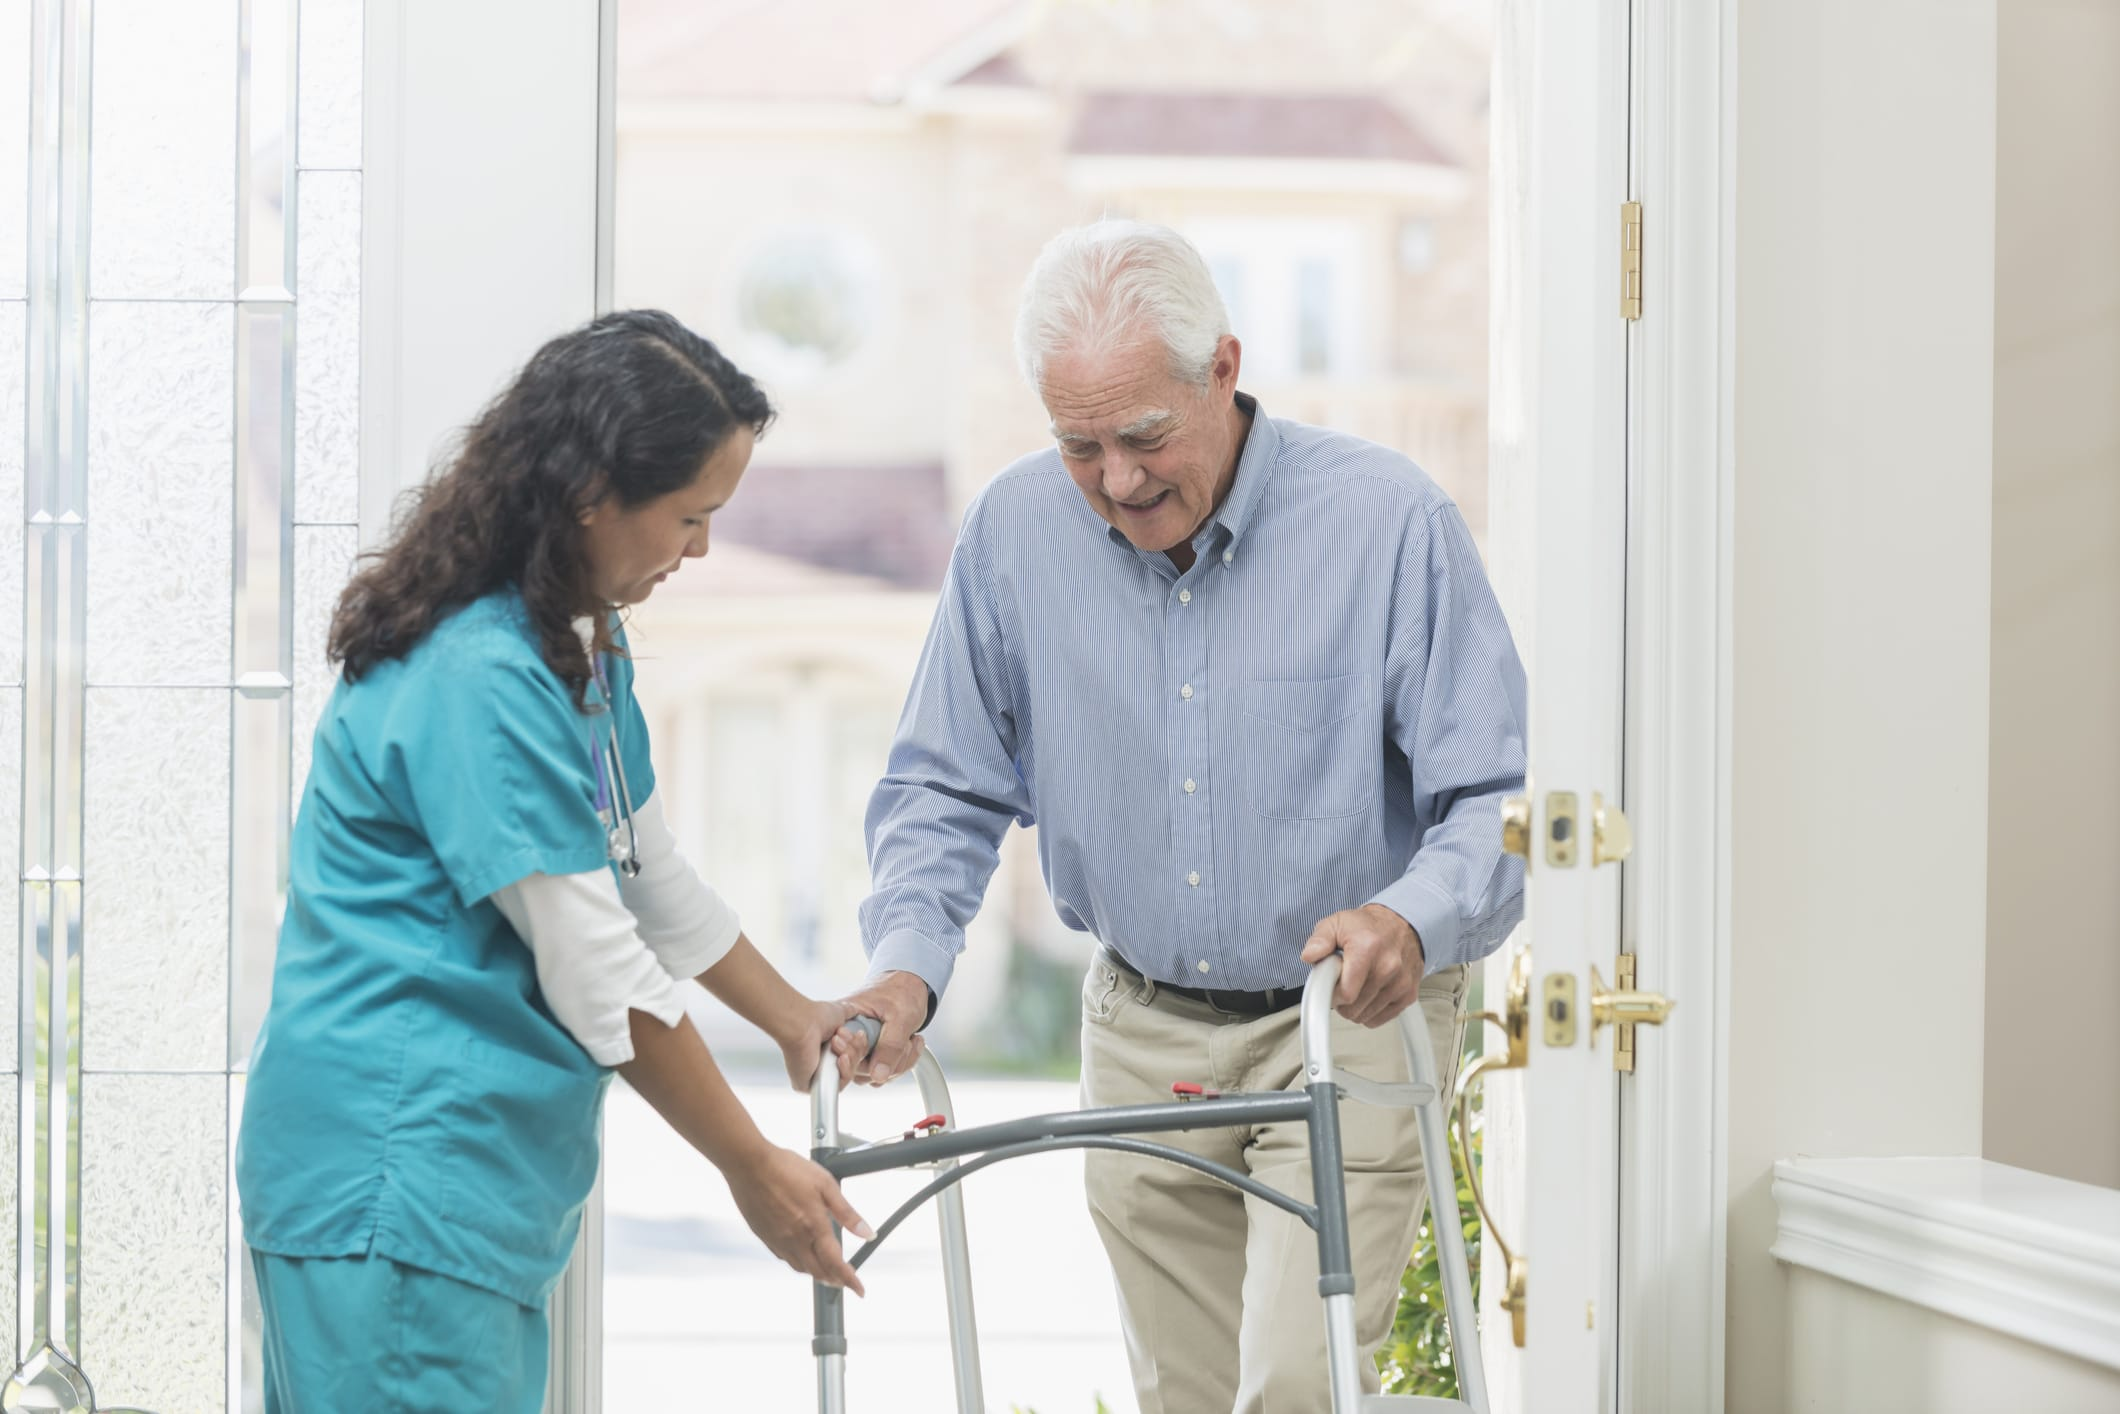 health and safety regulations for elderly care Risk assessment health and safety requirements for care homes – the management of health and safety at work regulations 1999 also require employers to assess the health and safety risks to both employees and others affected by the business.